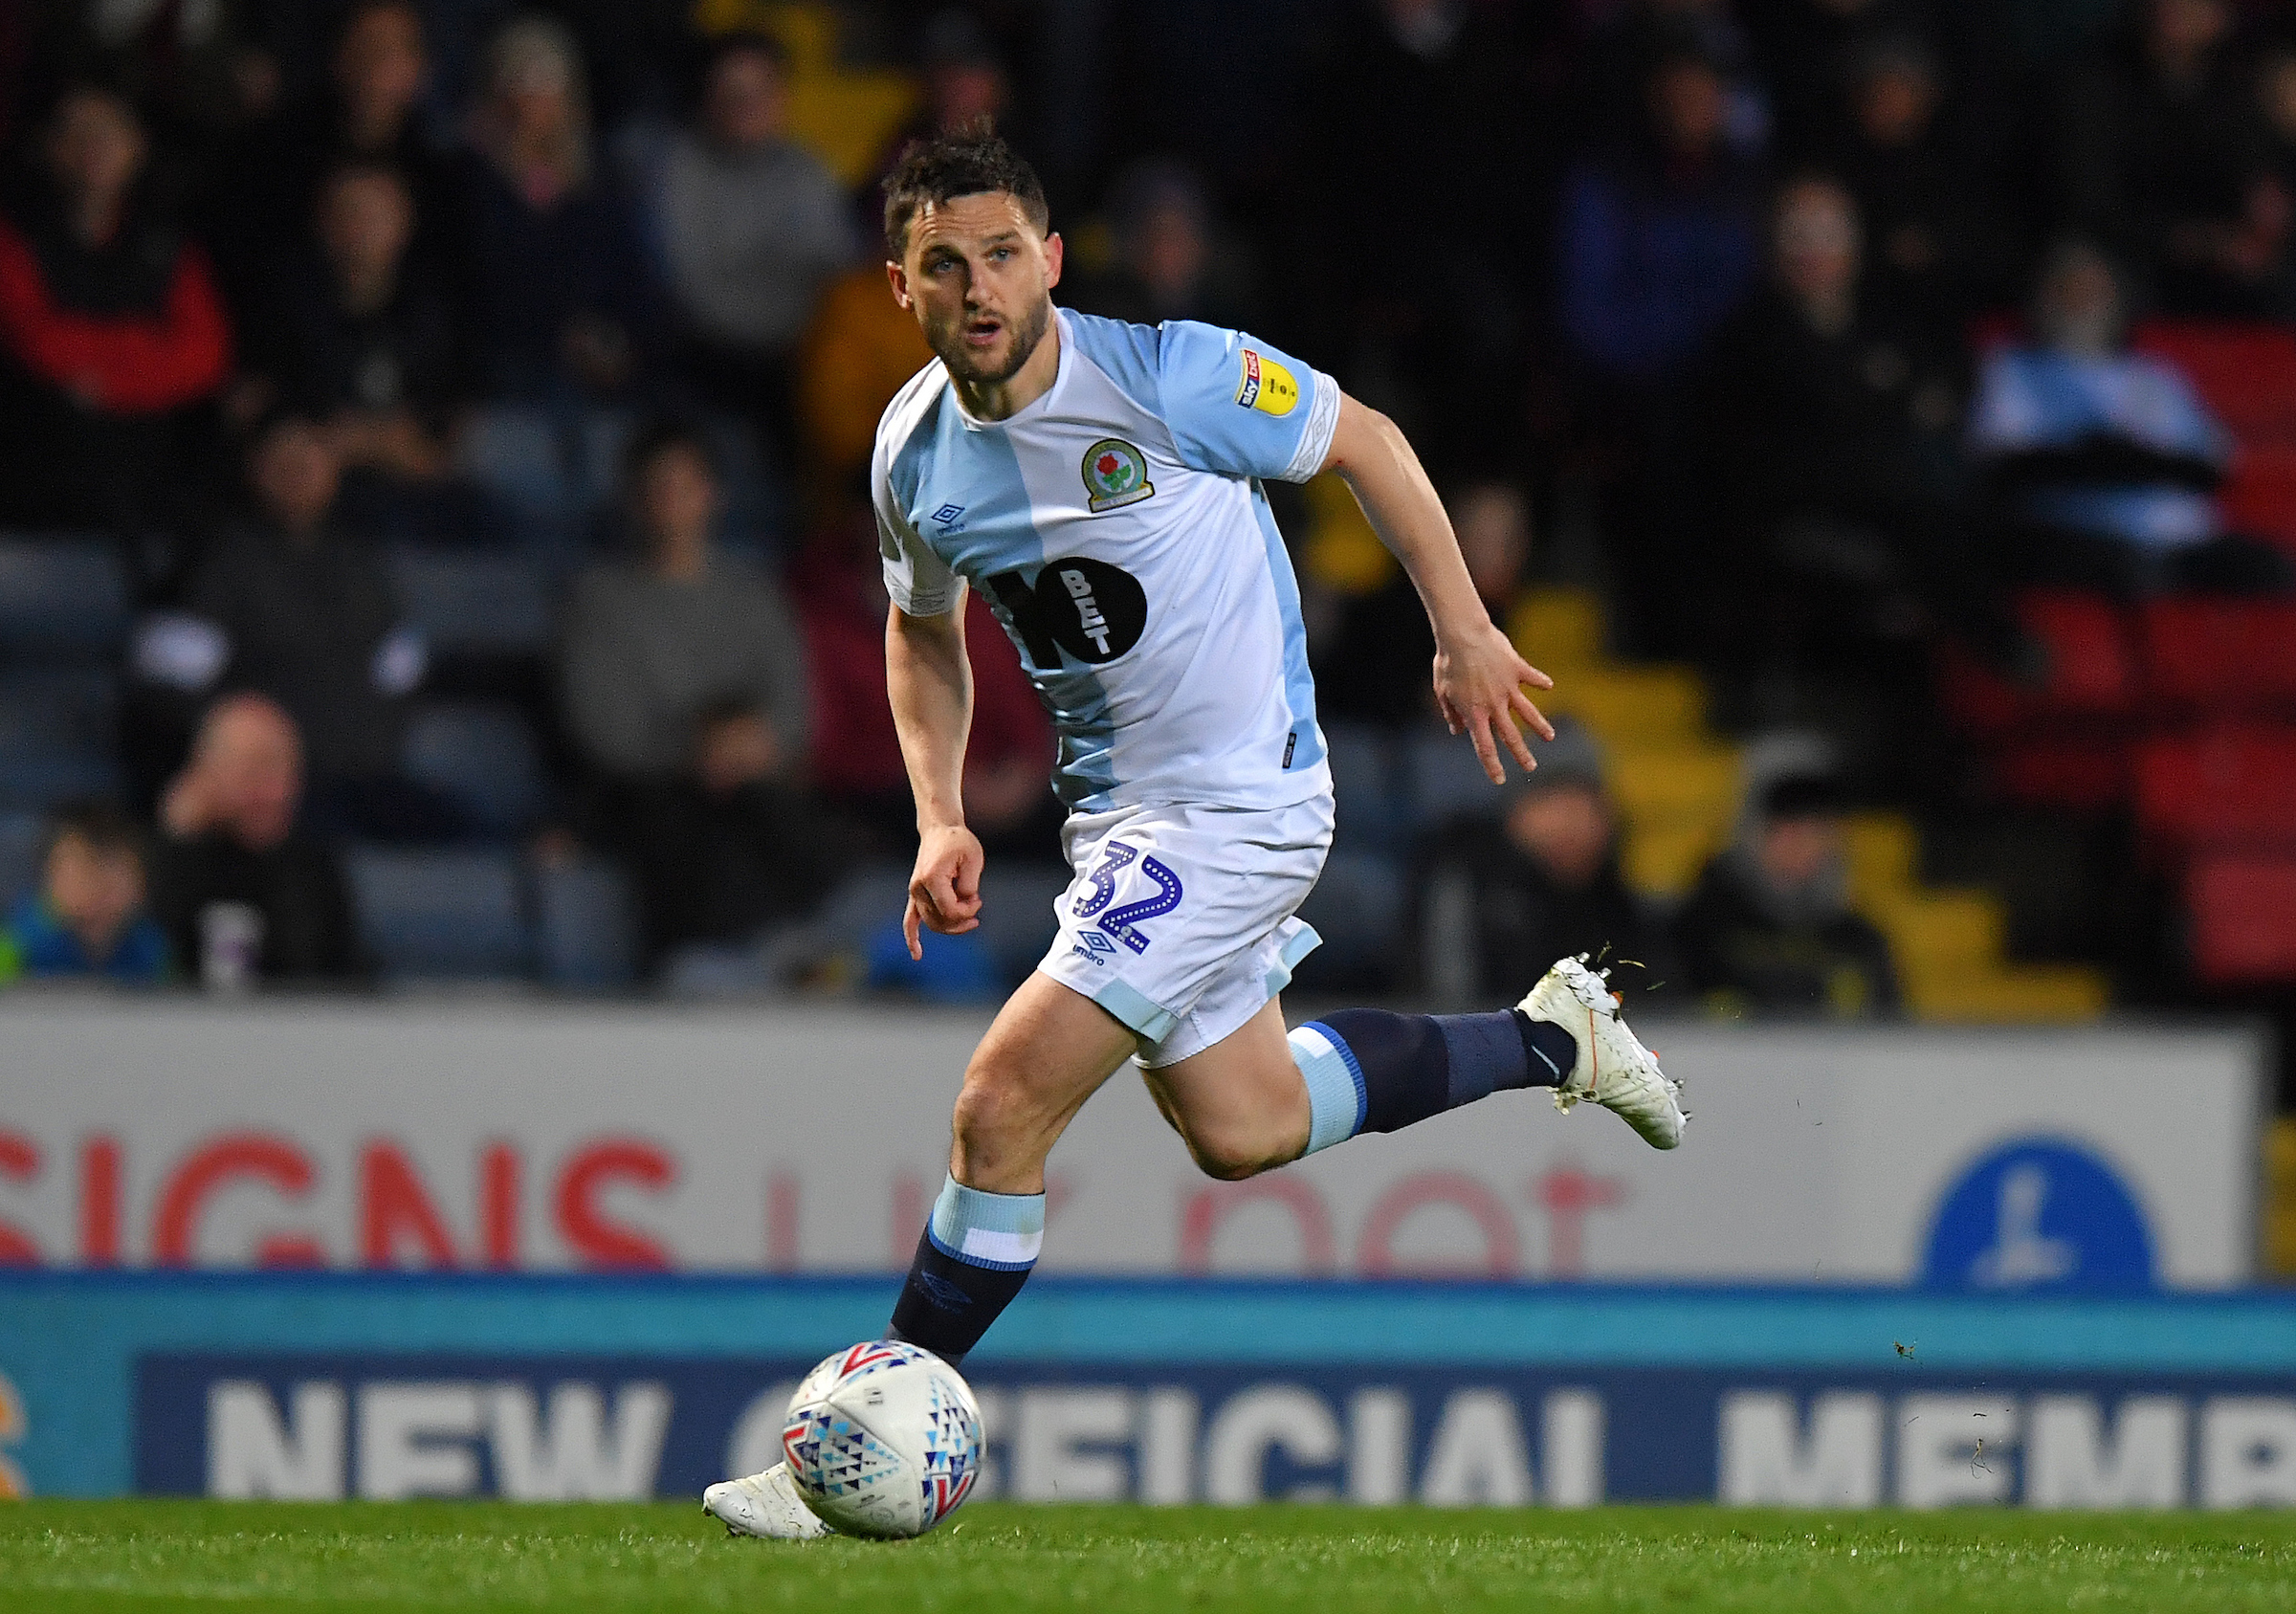 Craig Conway sees his current deal expire at Rovers this summer